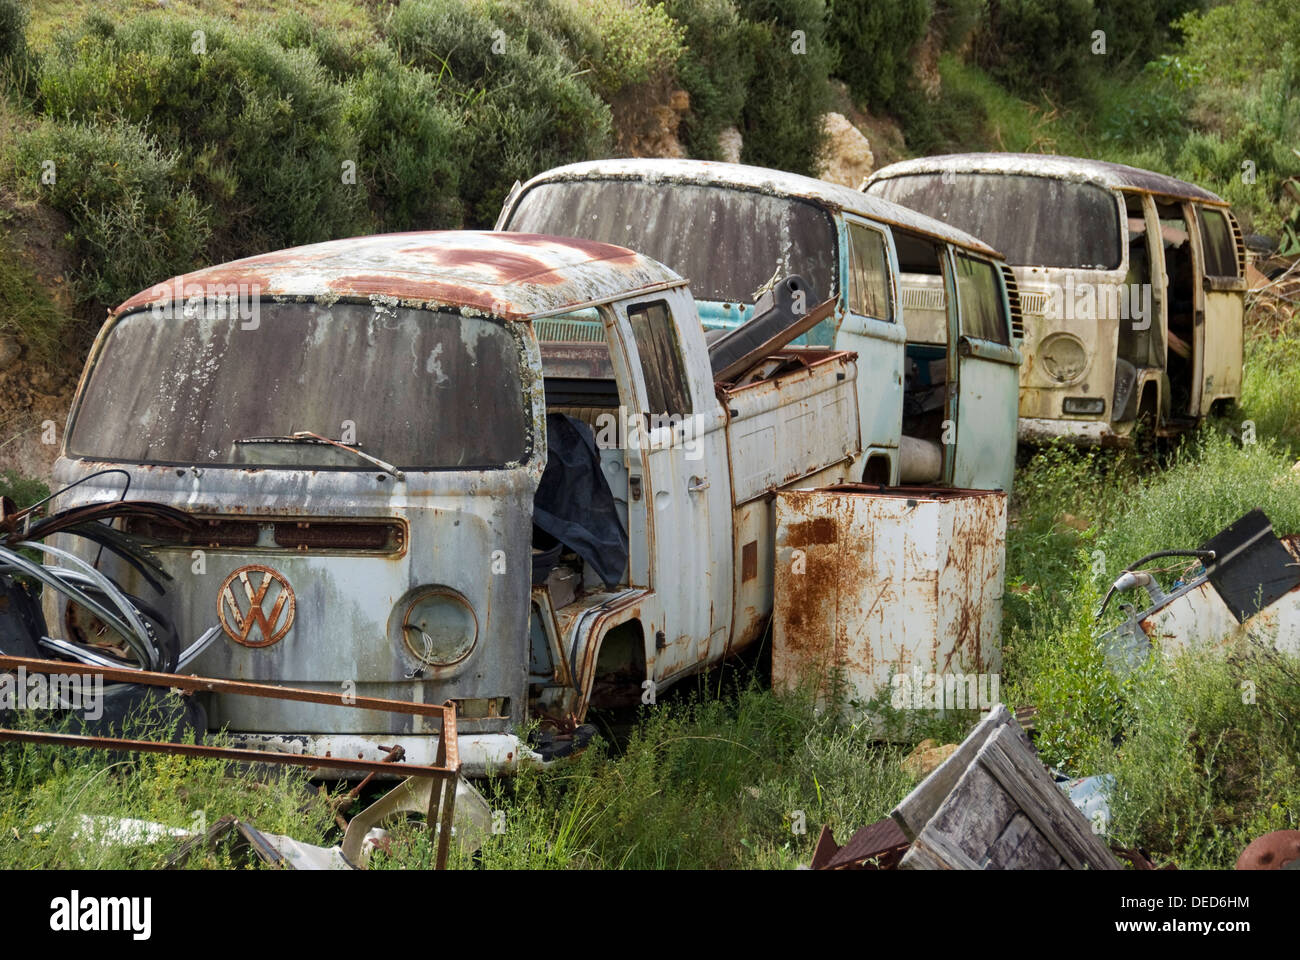 A Row Of Old Rusted Camper Vans